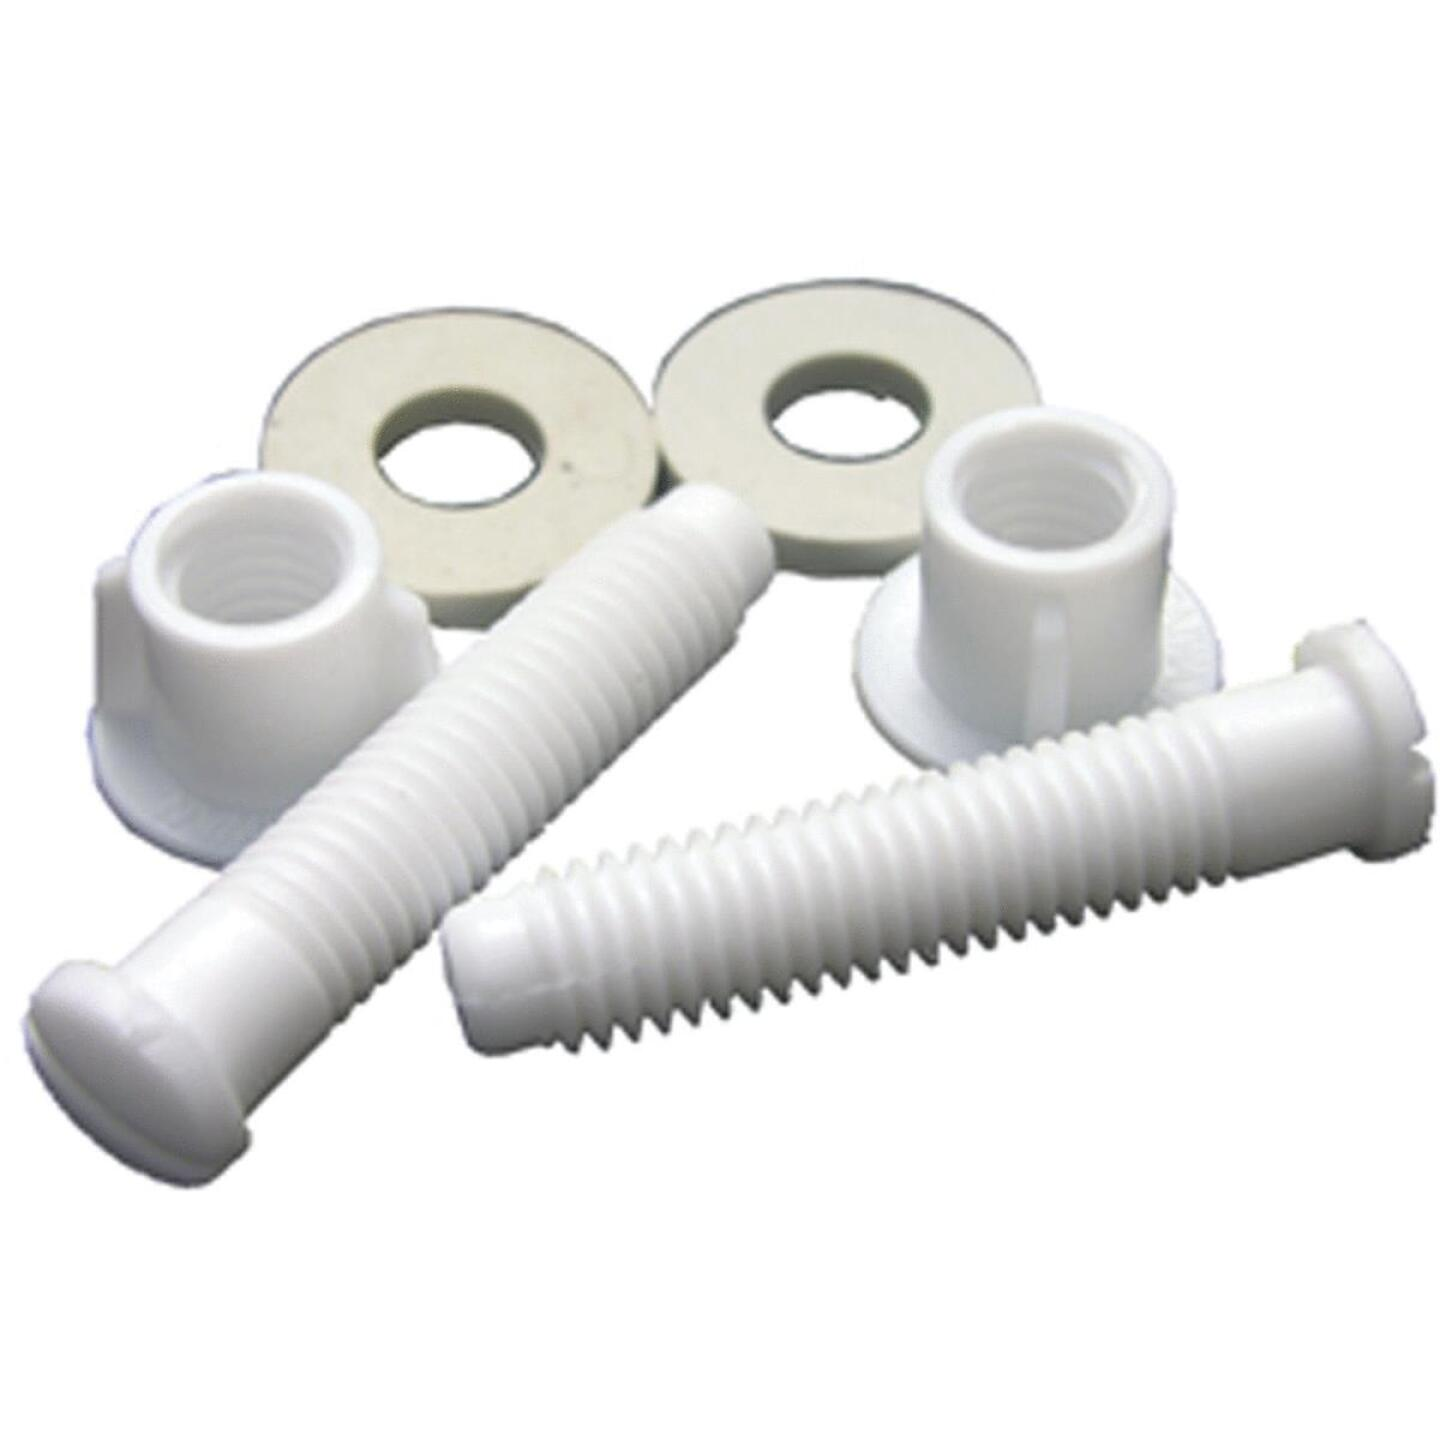 """Lasco 7/17"""" x 2-1/8"""" White Plastic Toilet Seat Bolt, Includes Nuts and Washers Image 1"""